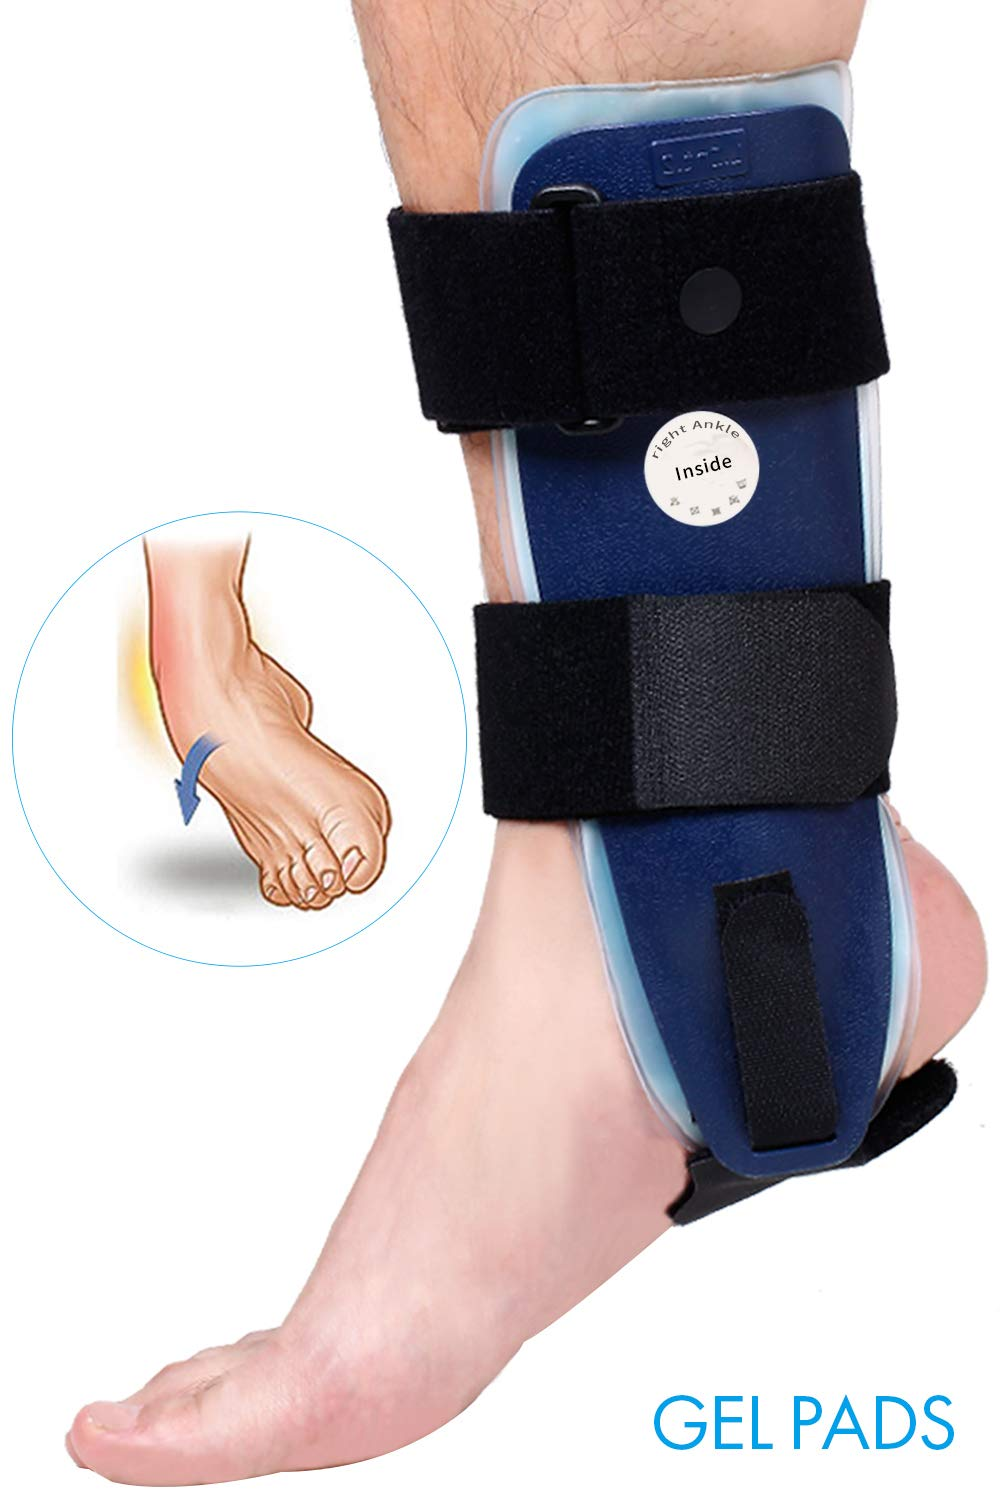 Velpeau Ankle Brace - Stirrup Ankle Splint - Adjustable Rigid Stabilizer for Sprains, Strains, Post-Op Cast Support and Injury Protection (Gel Pads, Large - Right Foot) by Velpeau